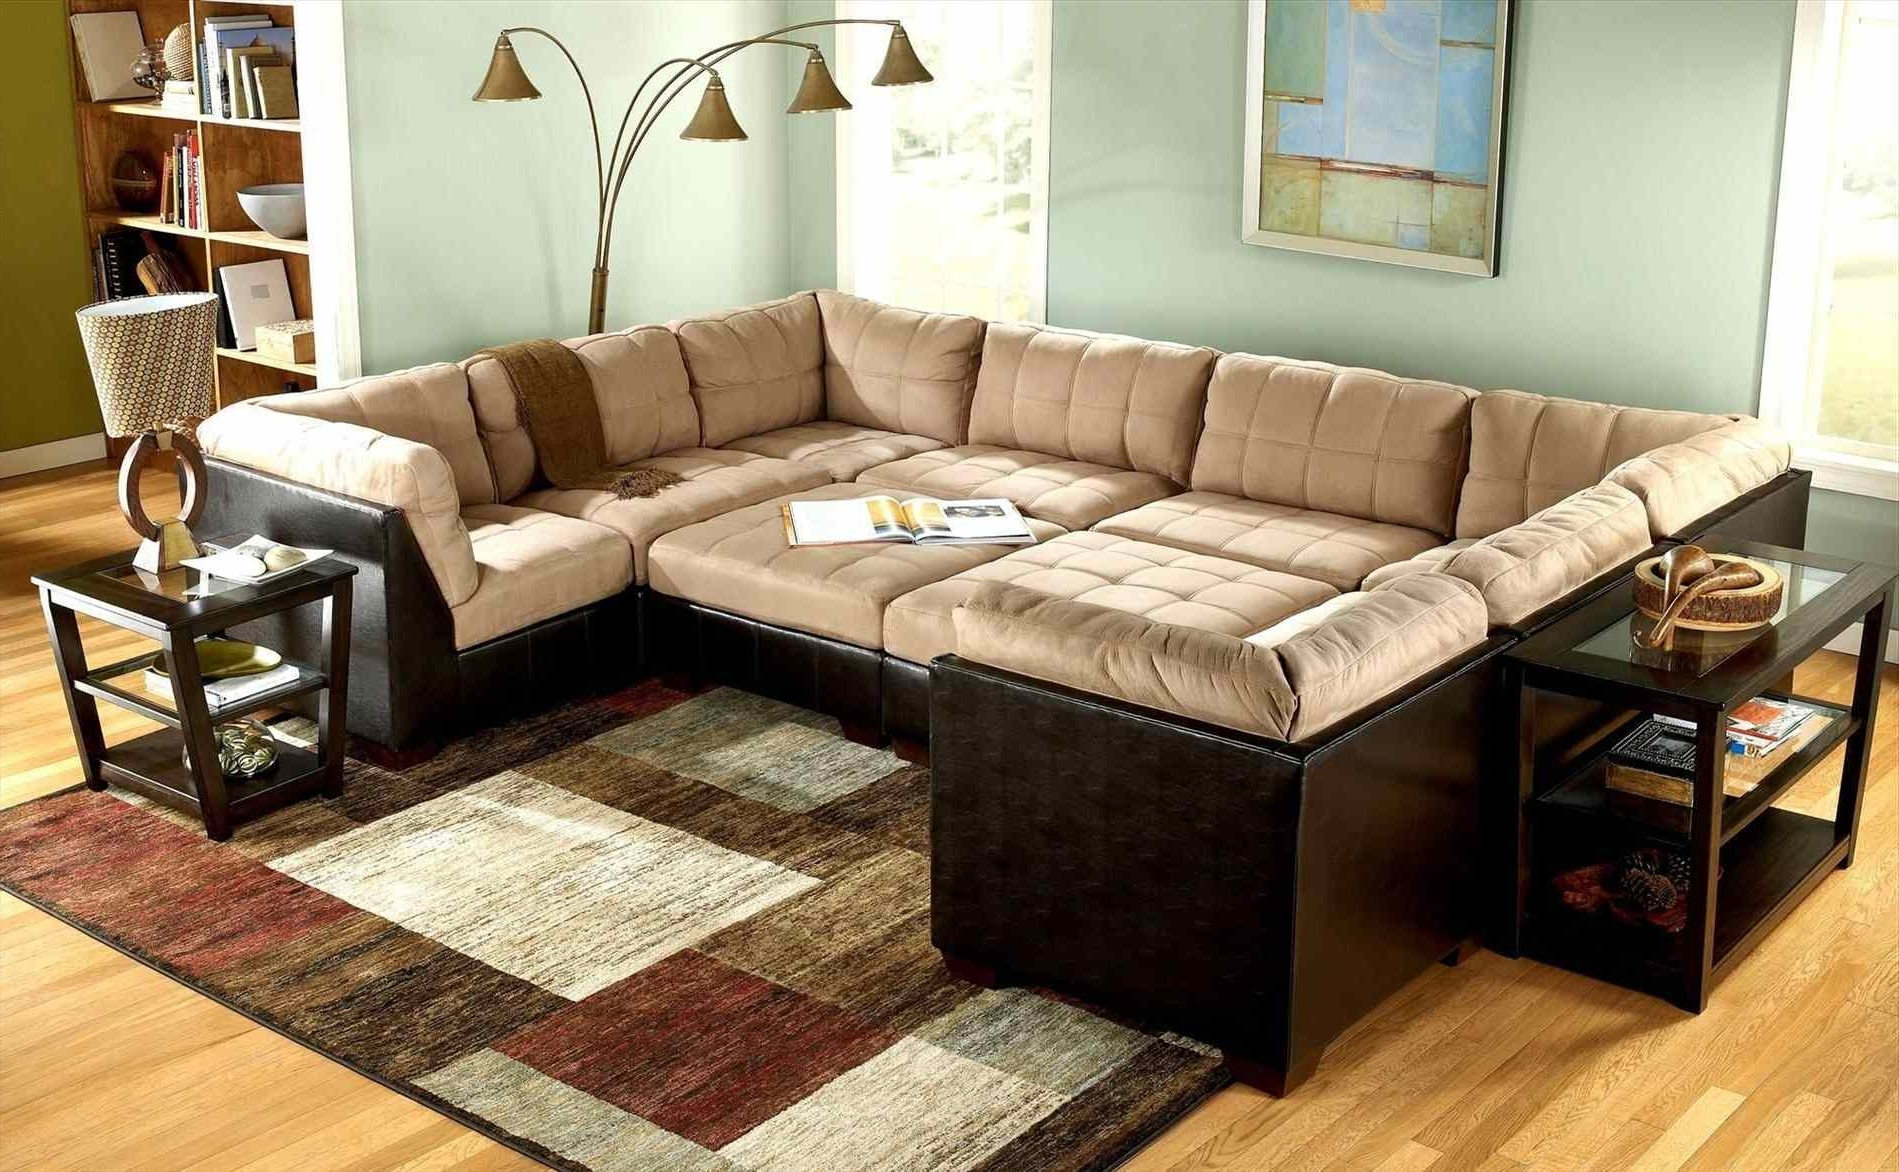 Widely Used Sectional Couches With Large Ottoman Intended For Couch : Ottomans Wrap Around Couch Unusual Design Large Sectional (View 9 of 20)